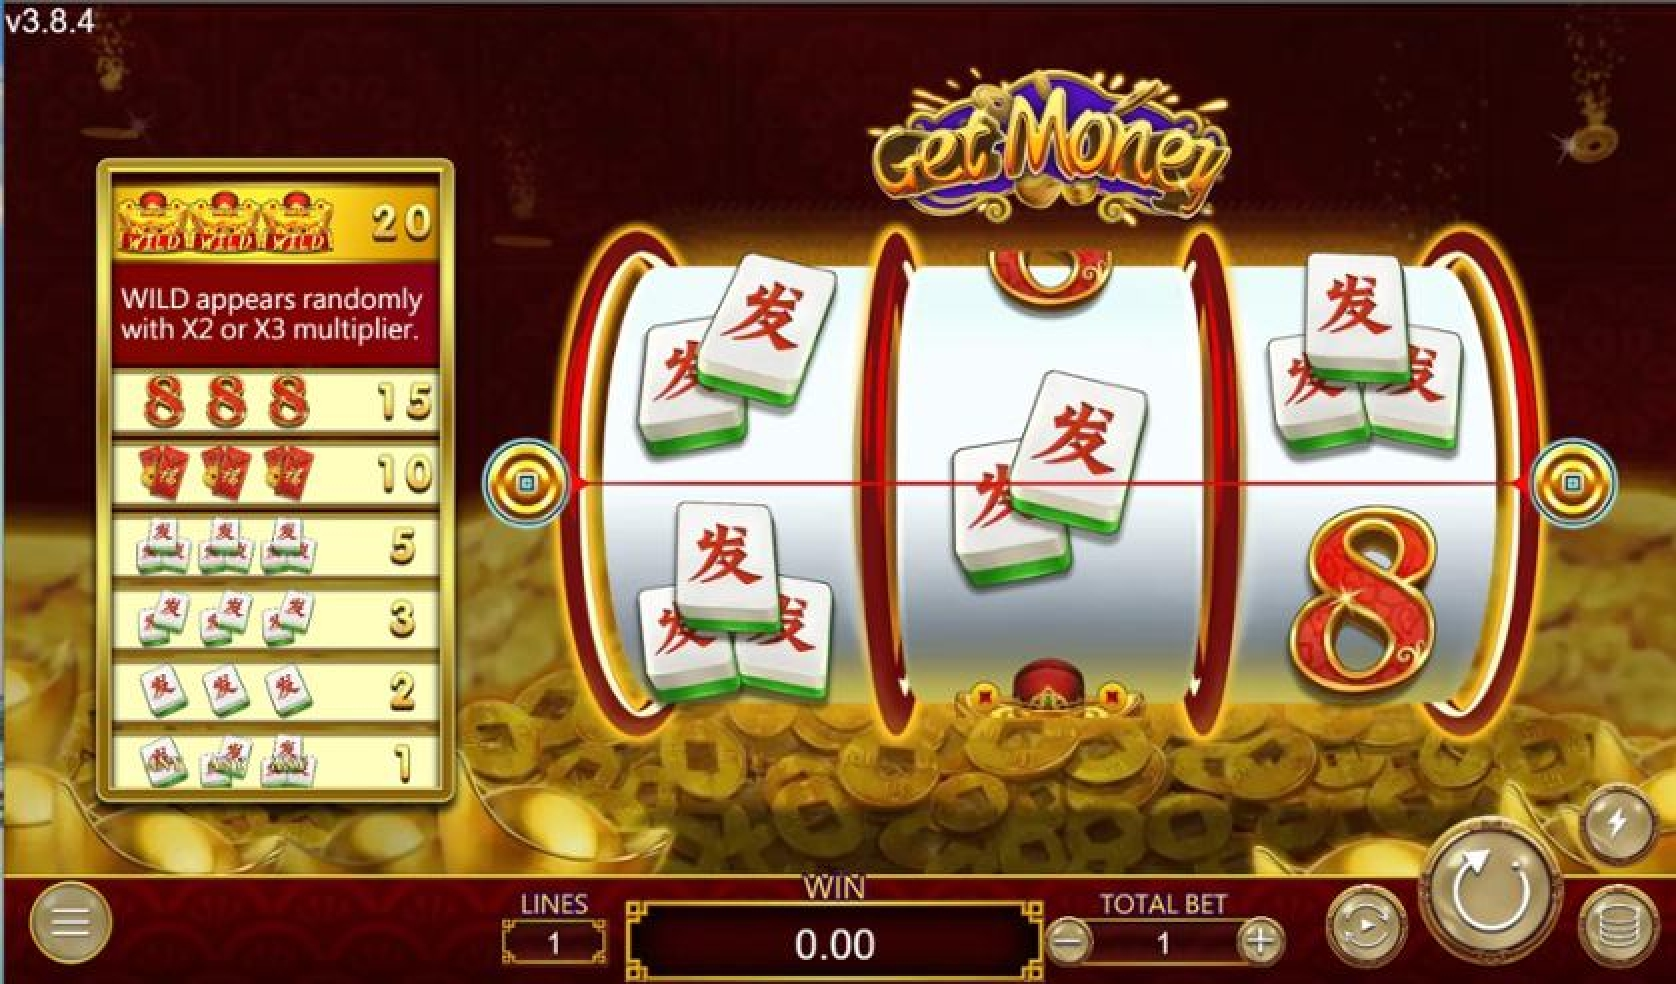 The Get Money Online Slot Demo Game by Dragoon Soft